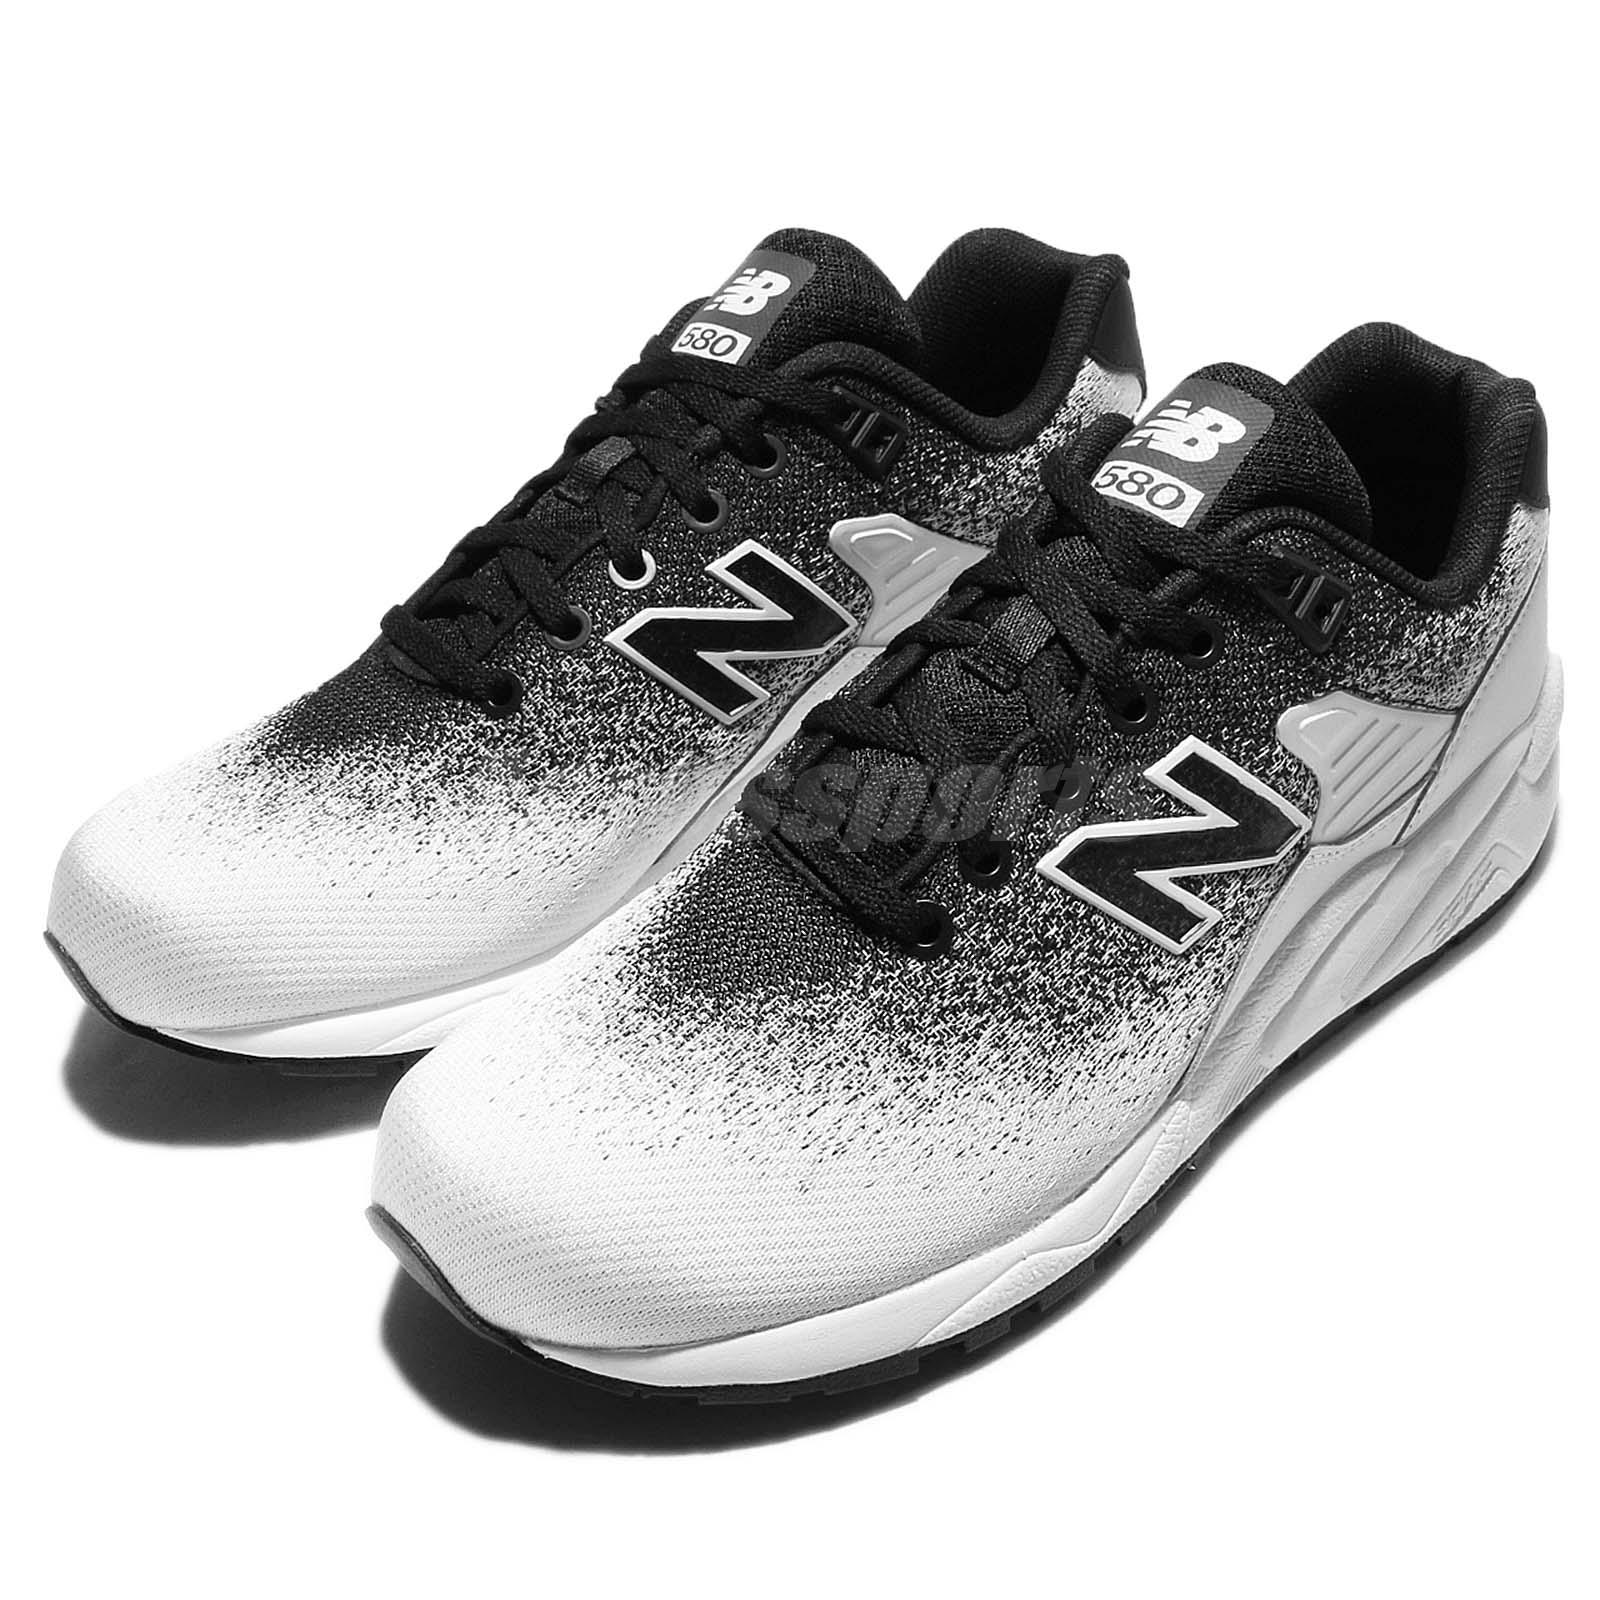 competitive price 4e575 69b14 Details about New Balance MRT580JR D Re-Engineered Jacquard White Mens  Running Shoes MRT580JRD